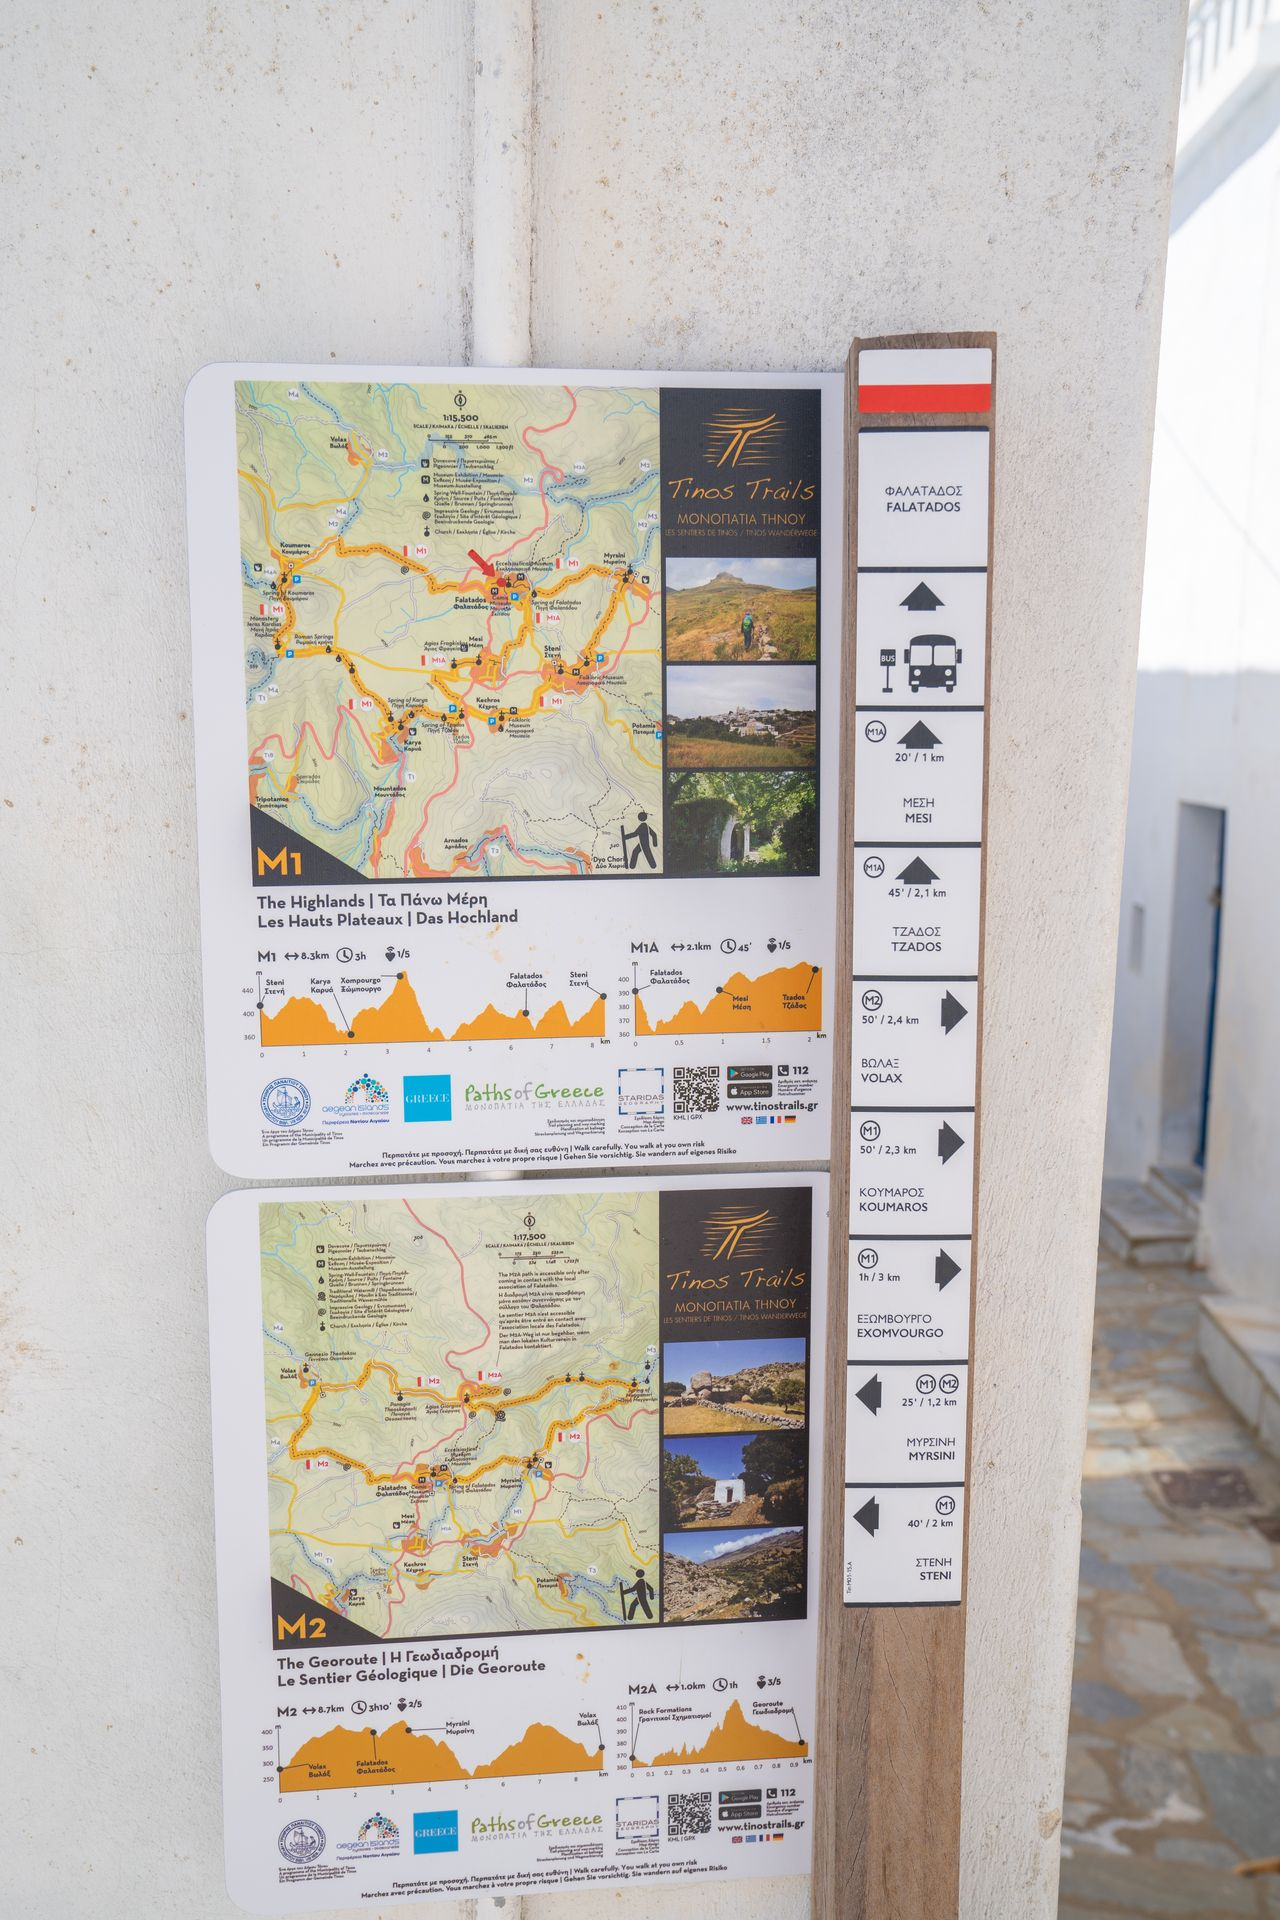 There are more than 150km of signposted hiking paths connecting the villages and crisscrossing the island